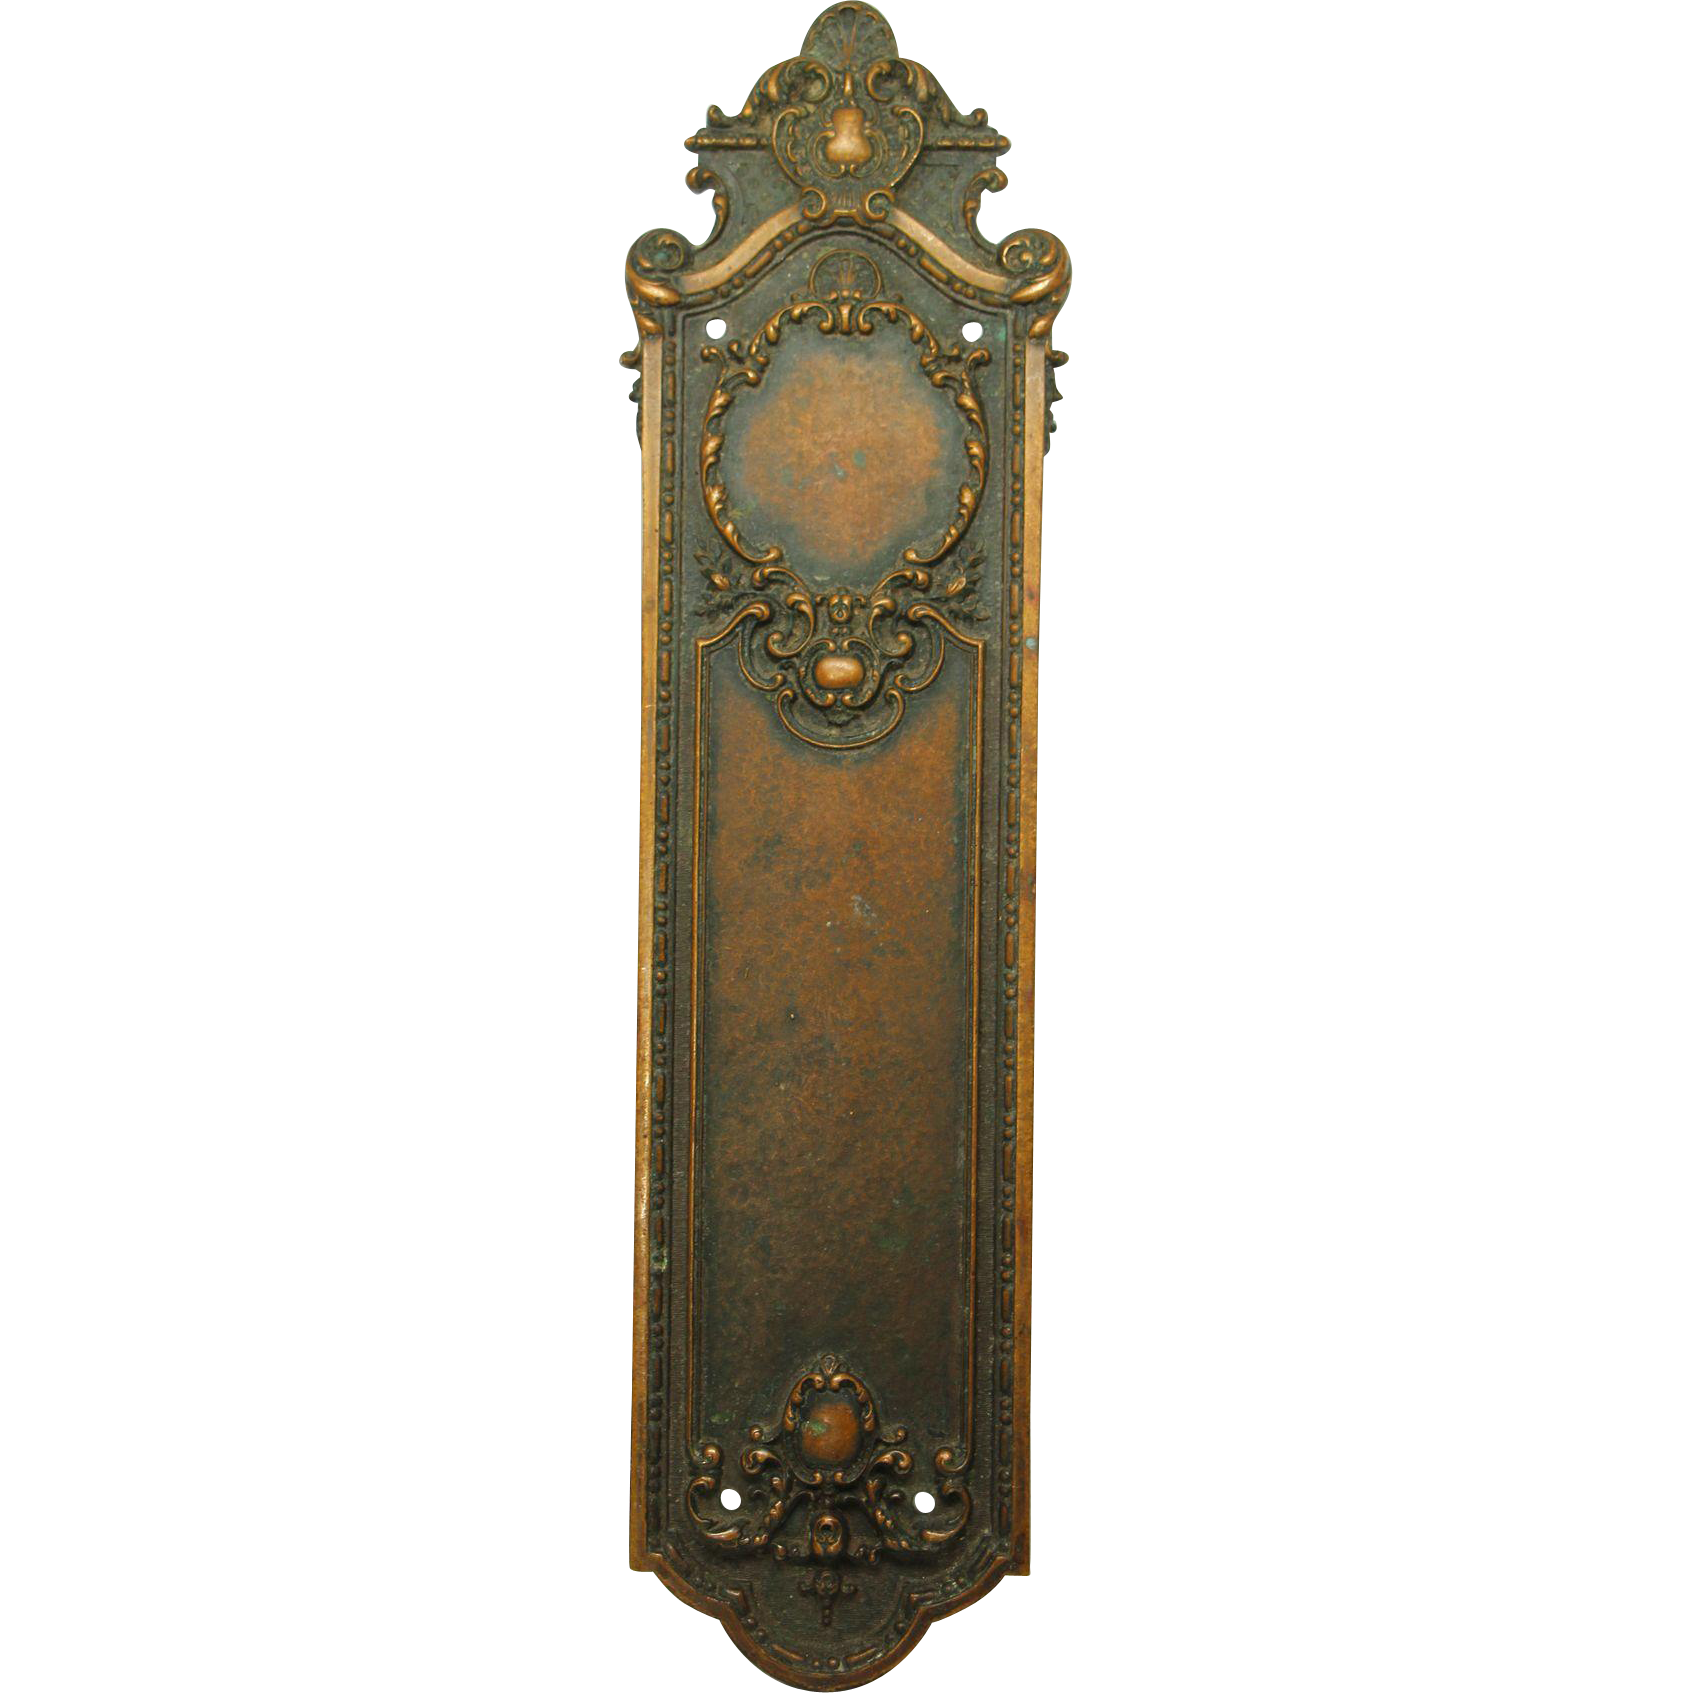 Ornate Sargent bronze push plate